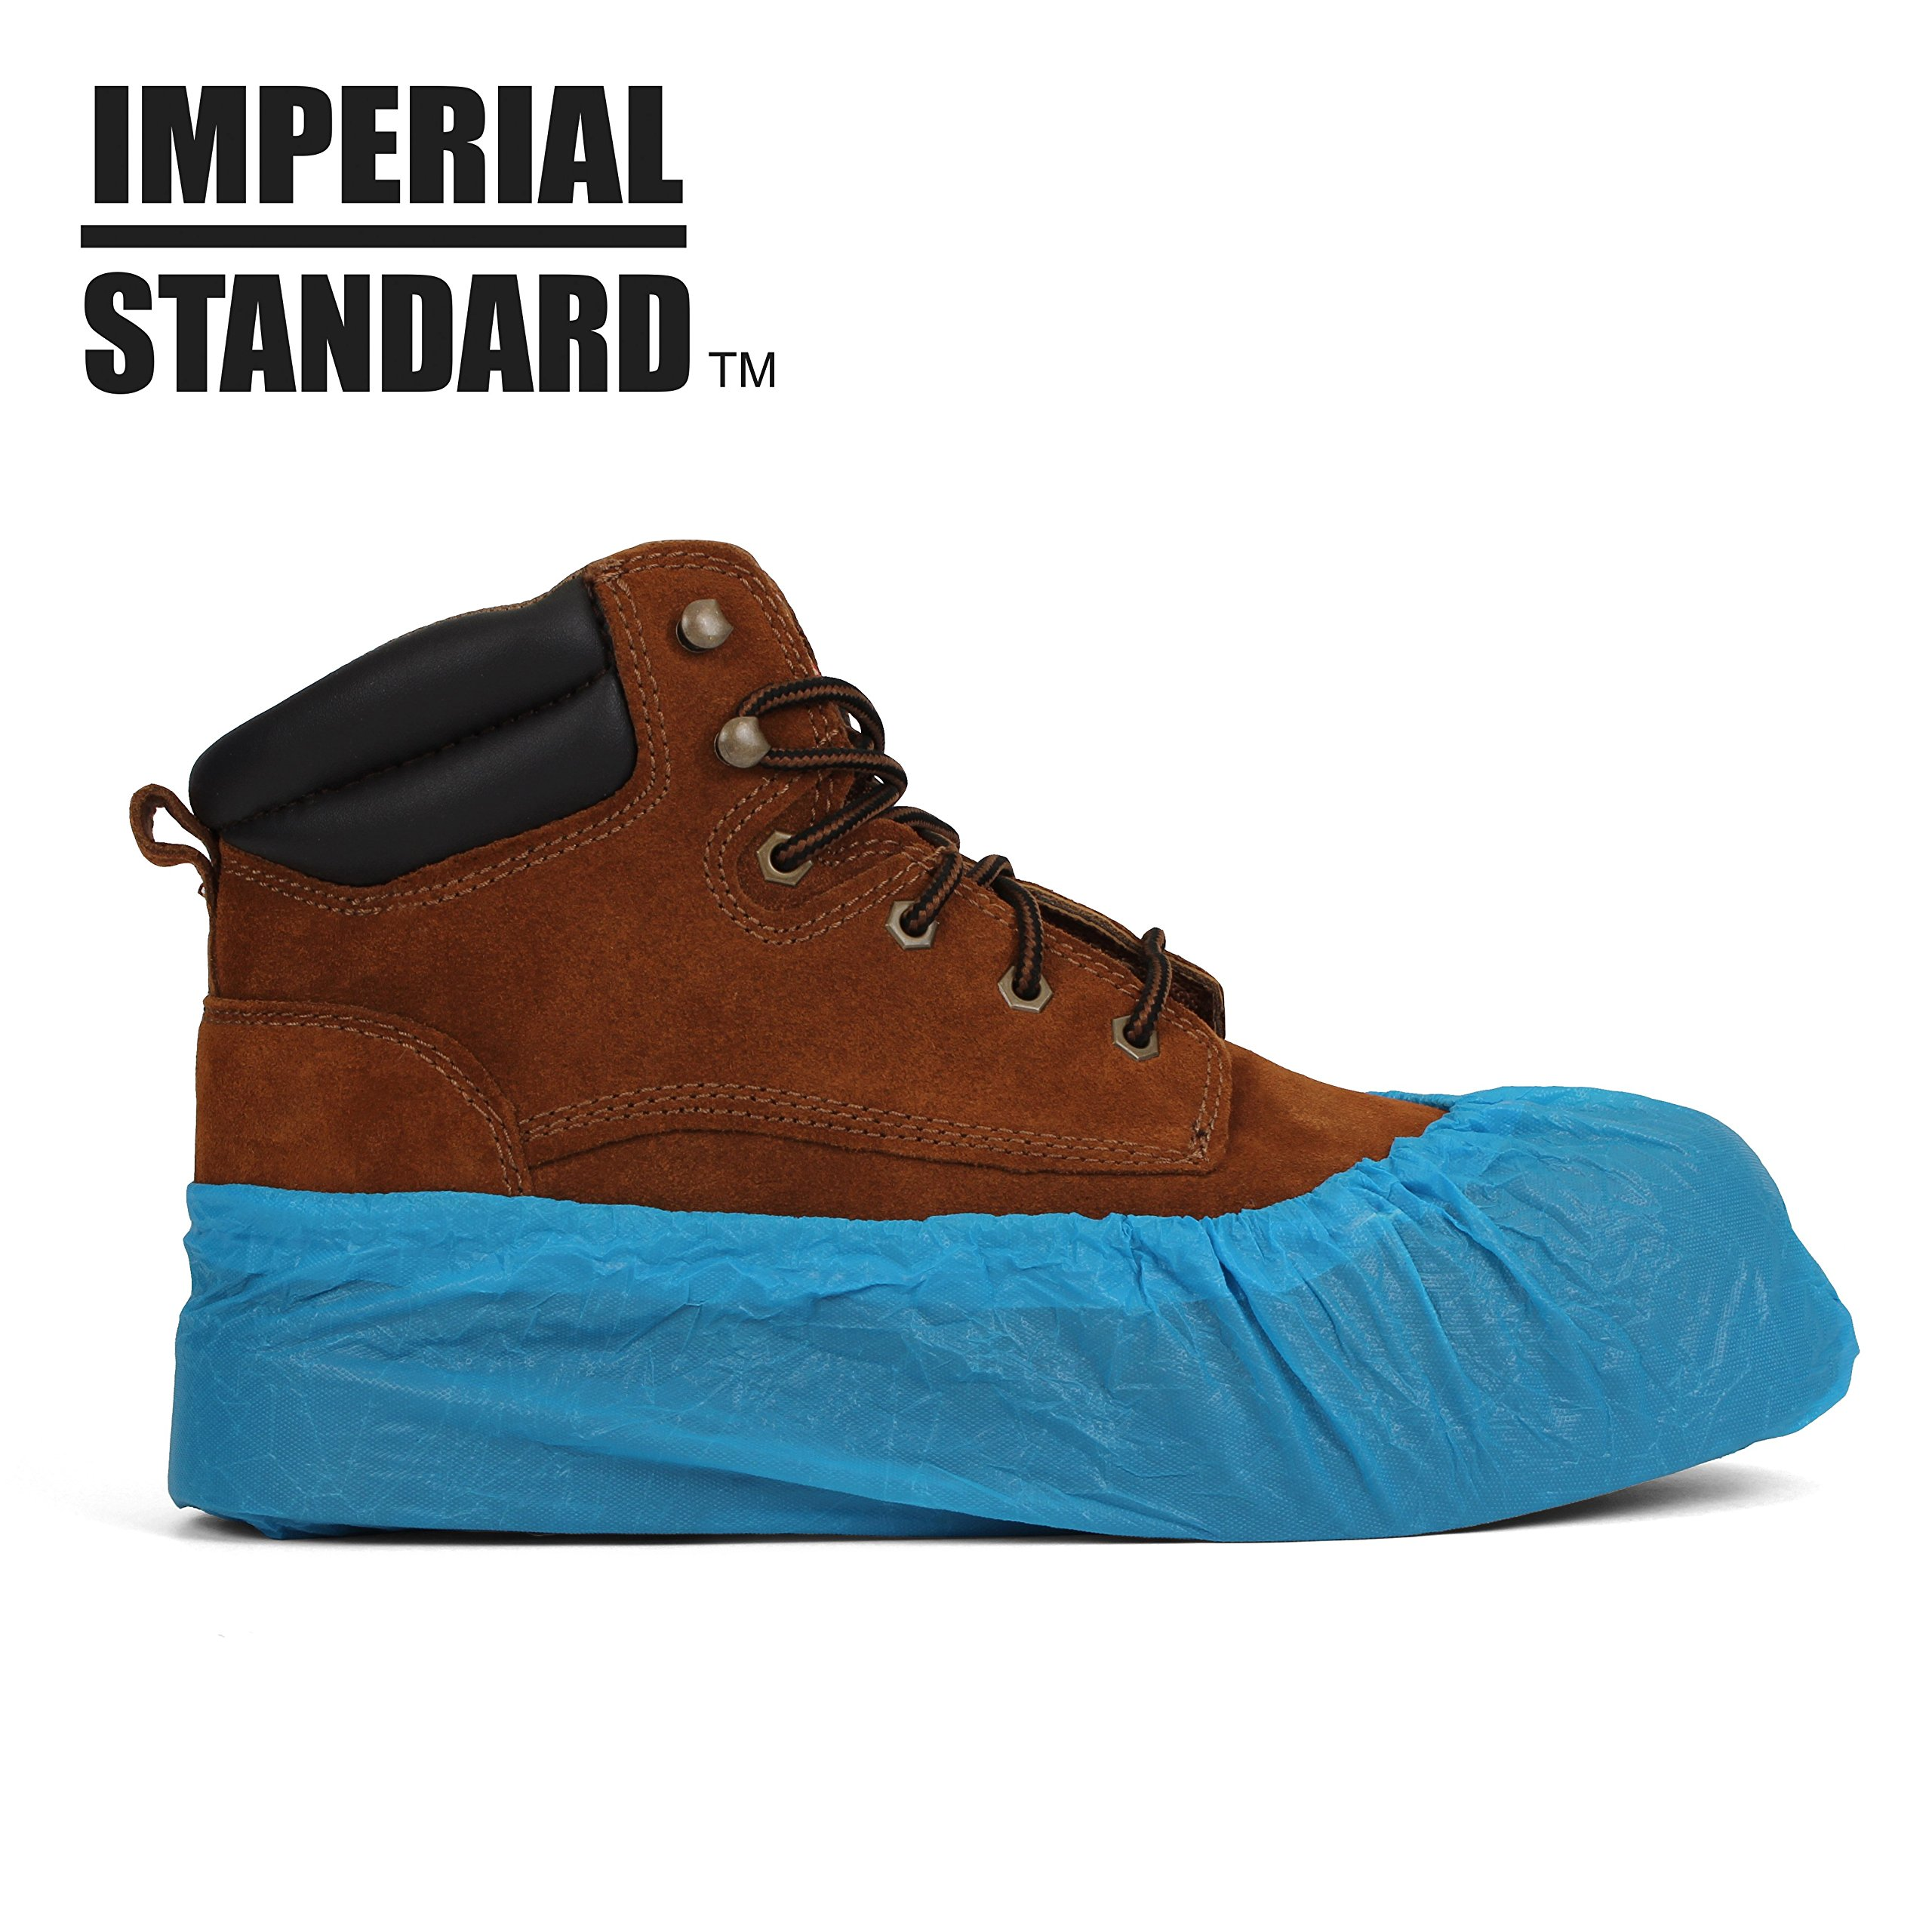 Waterproof Boot Covers for Professionals - XL Disposable Shoe Covers - Non-Slip Waterproof Shoe Protectors - Fits up to Size 13 Work Boot and Size 14 Shoe - (100 pack) by Imperial Standard (Image #1)